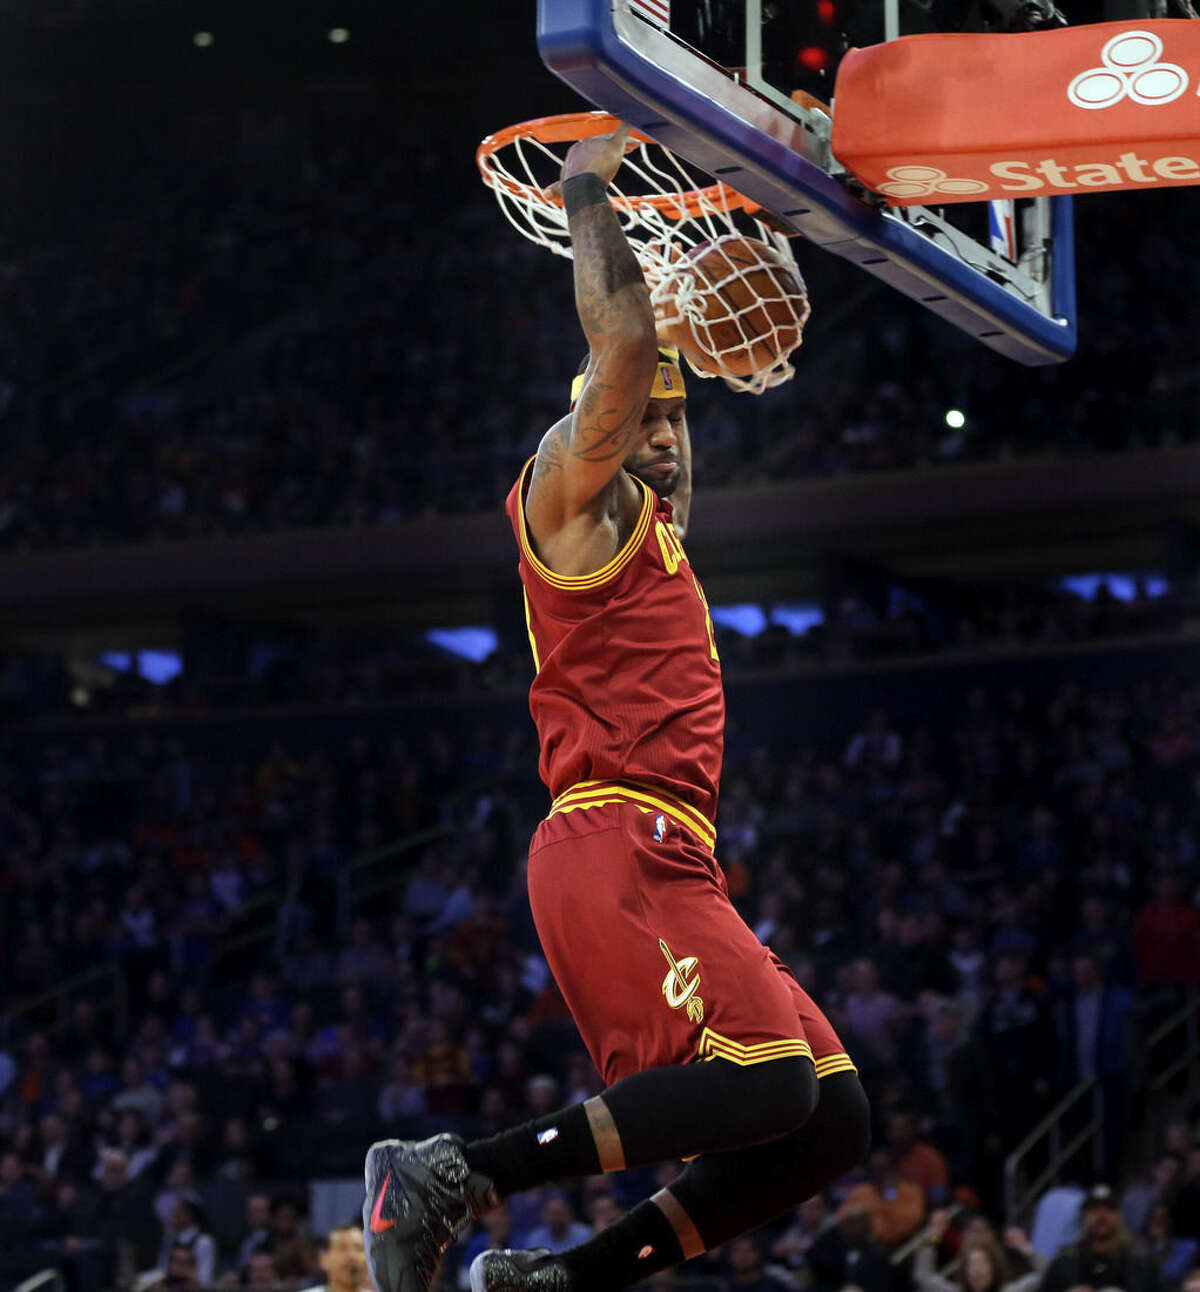 Cleveland Cavaliers' LeBron James dunks the ball during the first half of an NBA basketball game against the New York Knicks, Sunday, Feb. 22, 2015, in New York. (AP Photo/Seth Wenig)